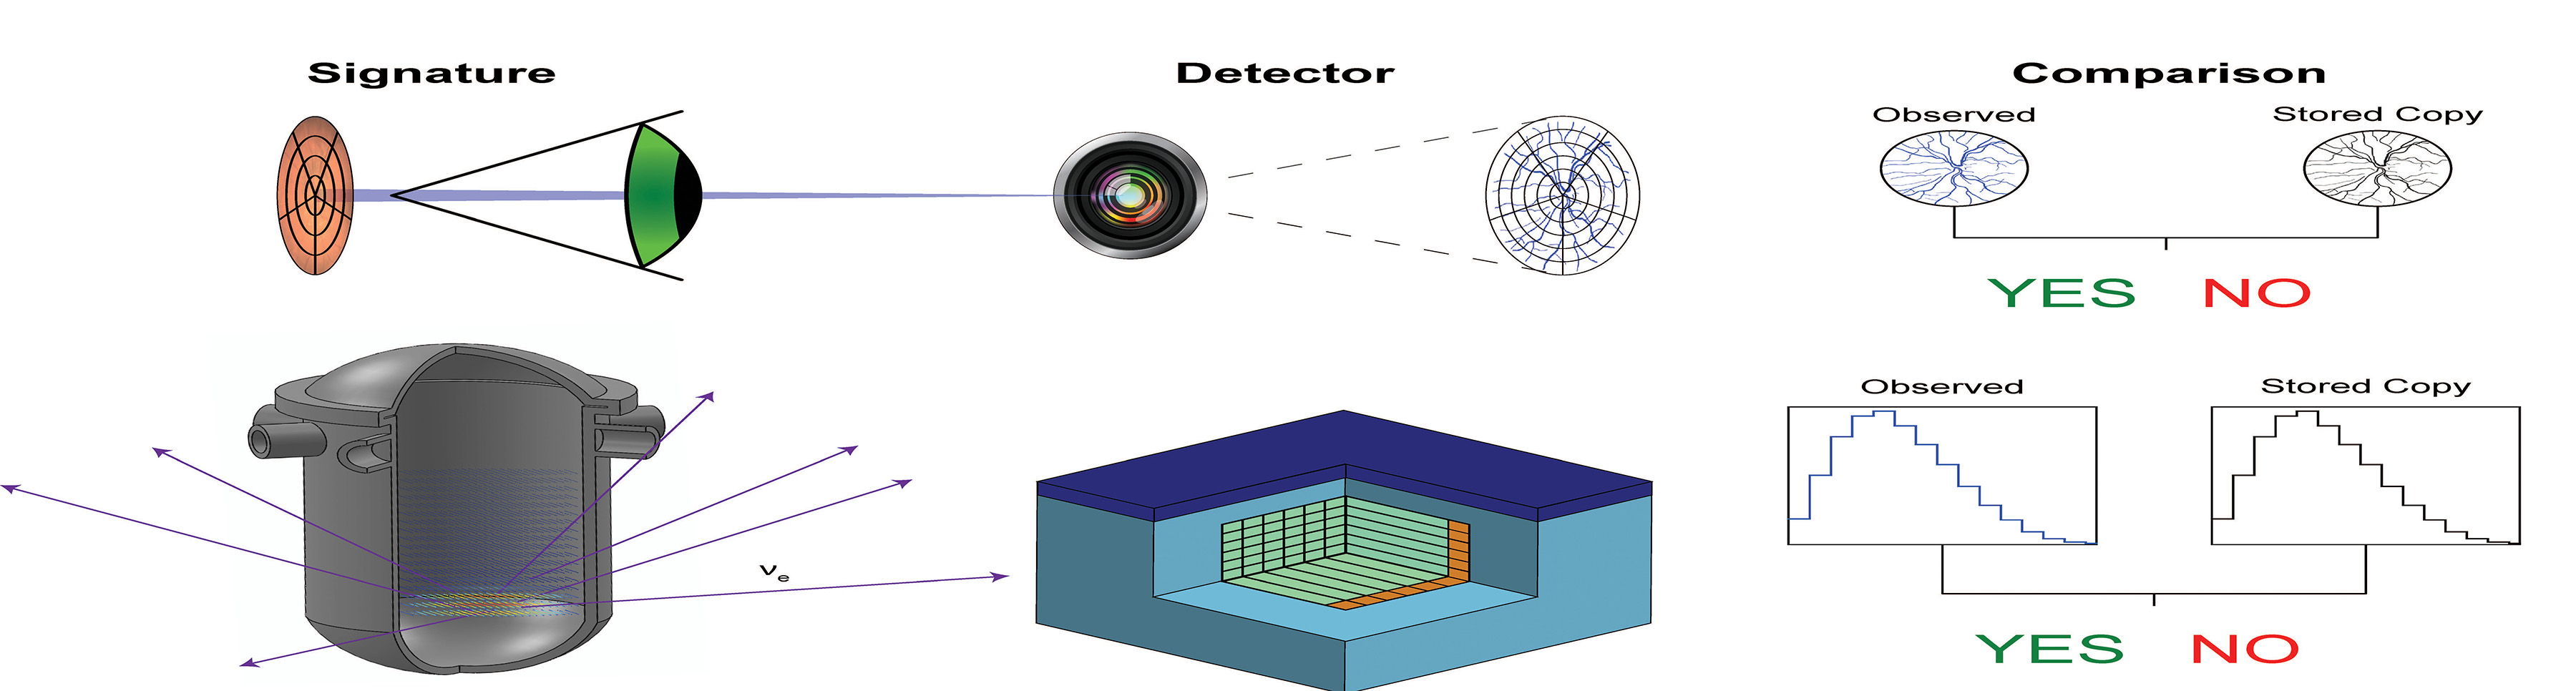 Nuclear reactor operating and detection